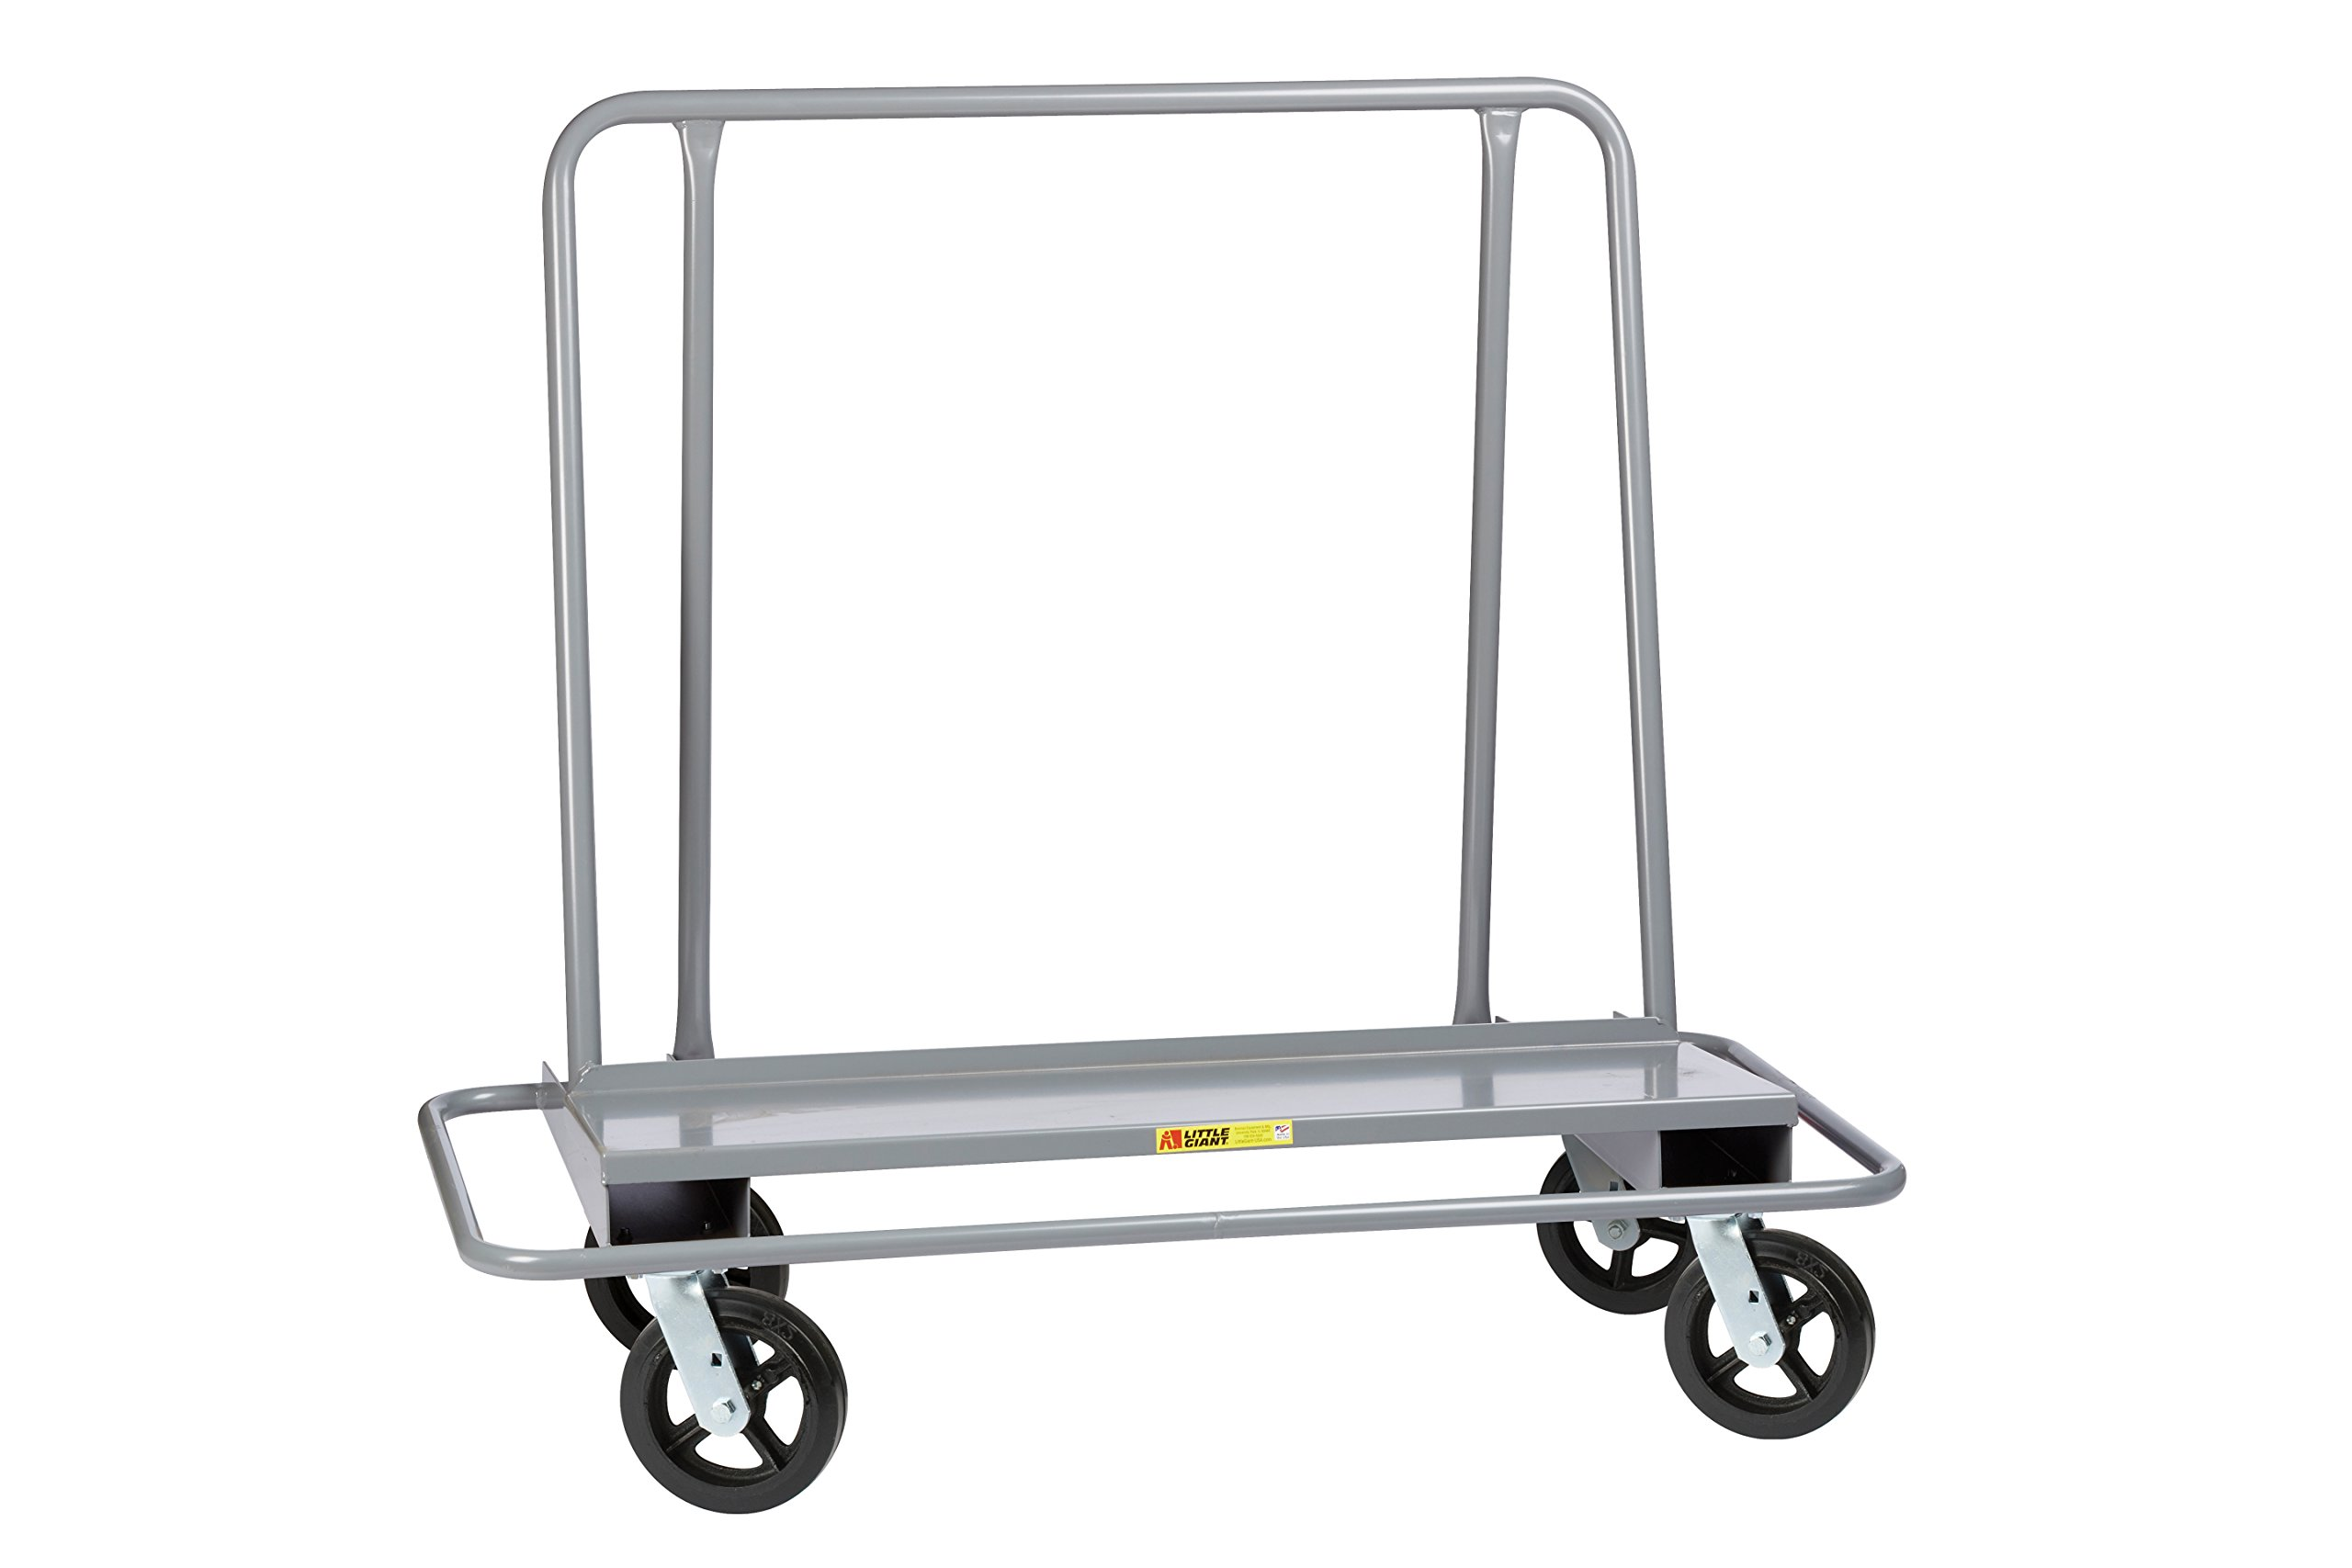 Little Giant DCB-2654-8MR Drywall Cart with Steel Bumper Frame, 4 Swivel, 8'' Mold-On Rubber, Gray